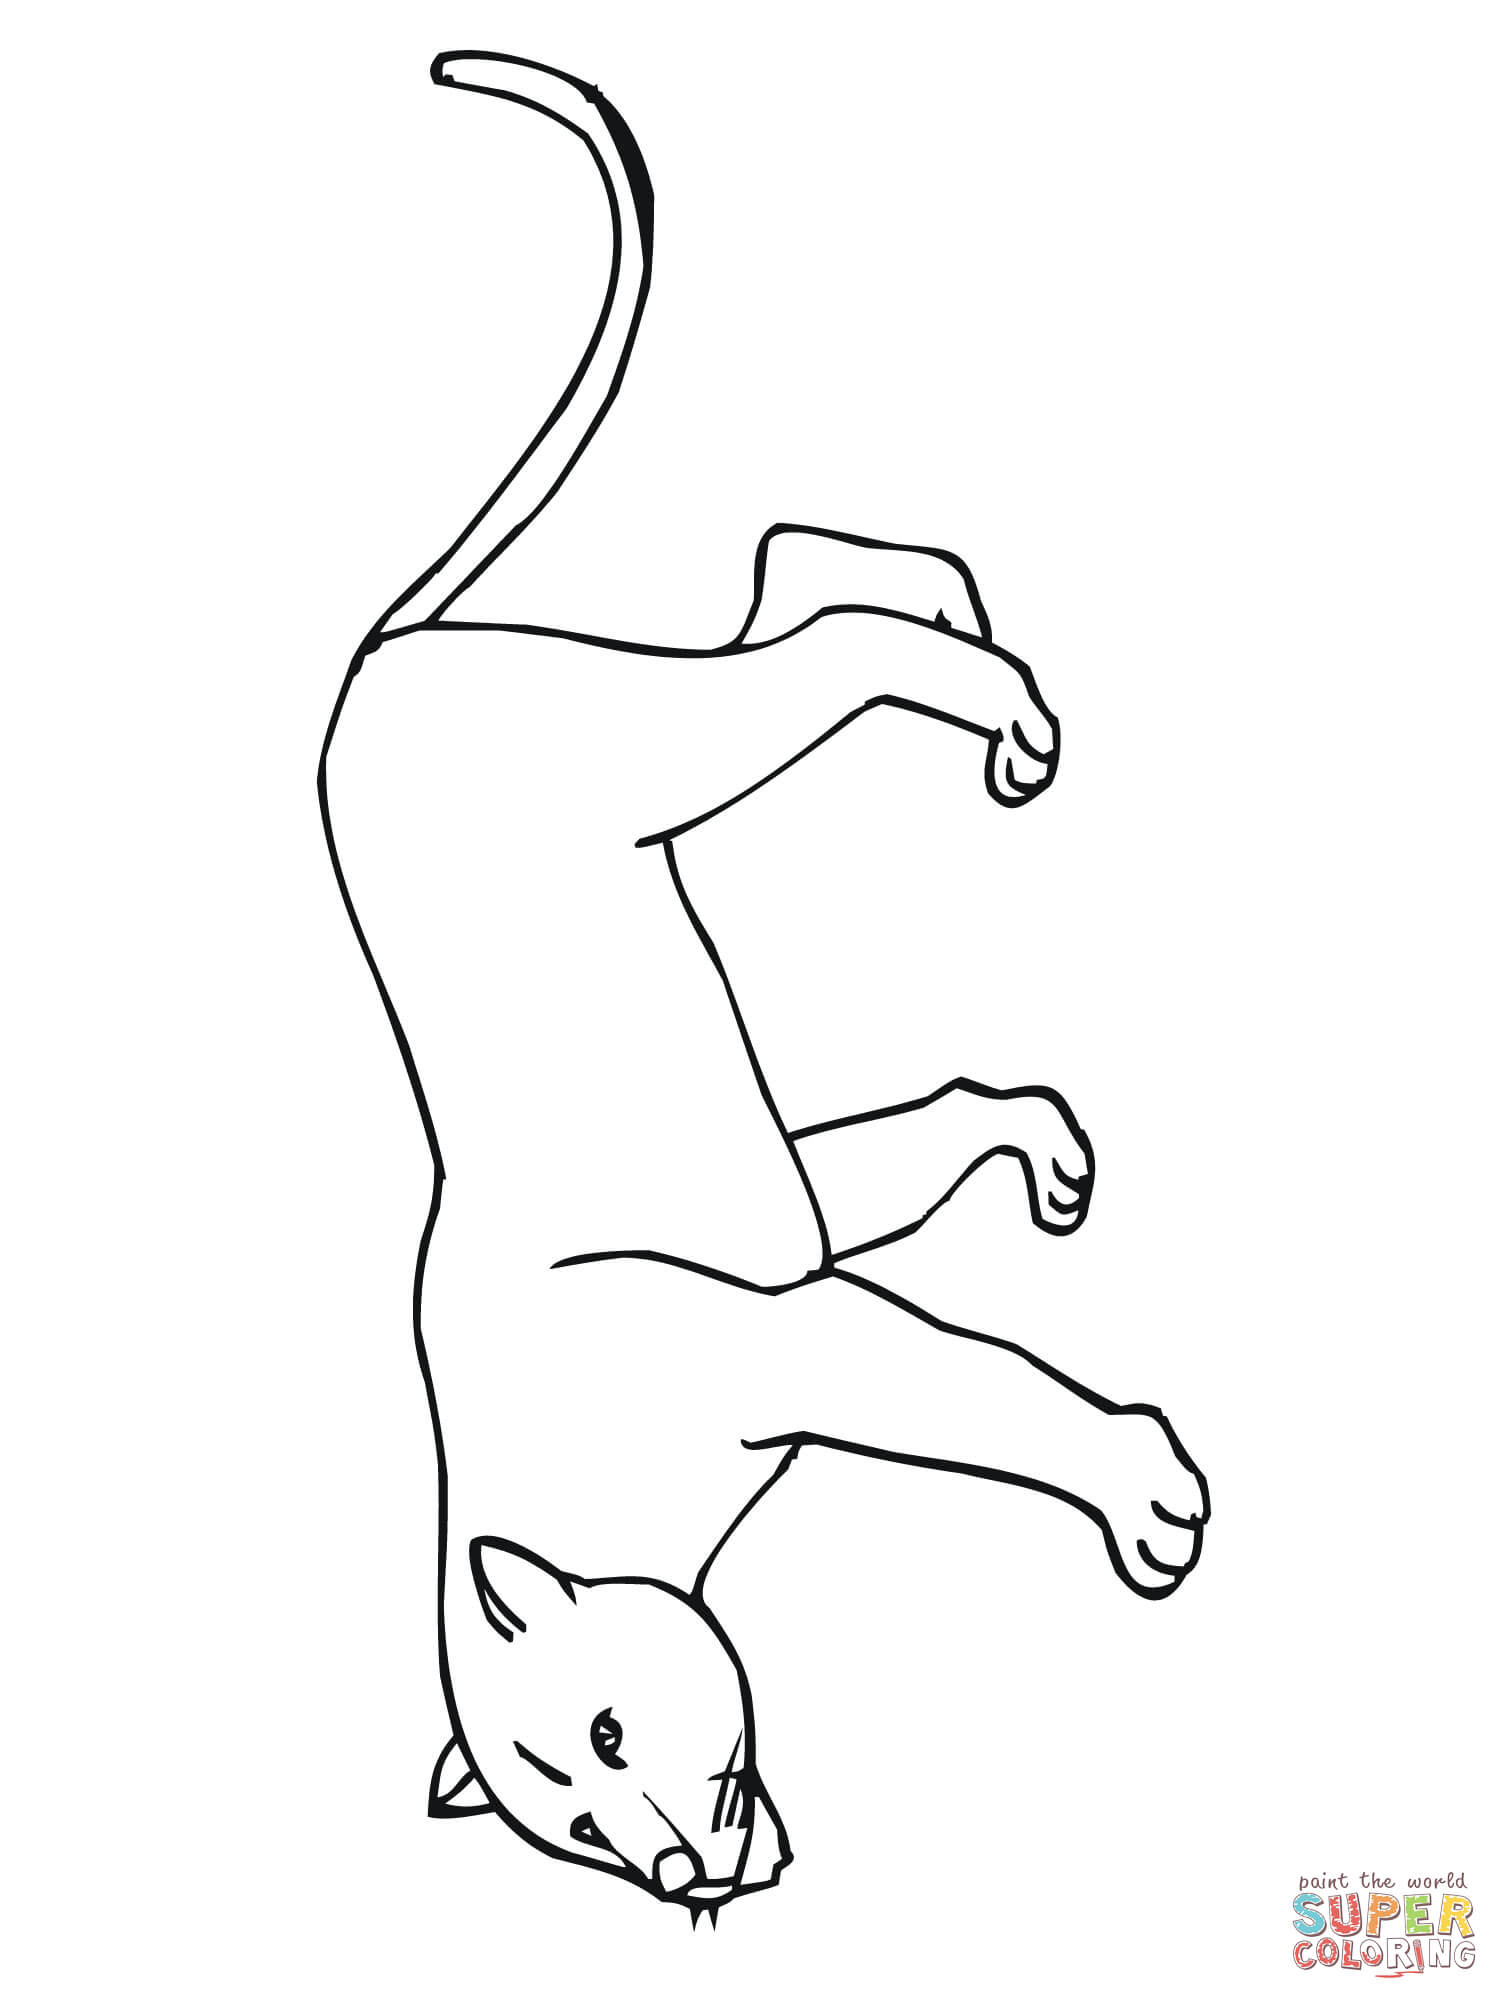 Cougar Or Puma Or Panther Or Mountain Lion Coloring Page